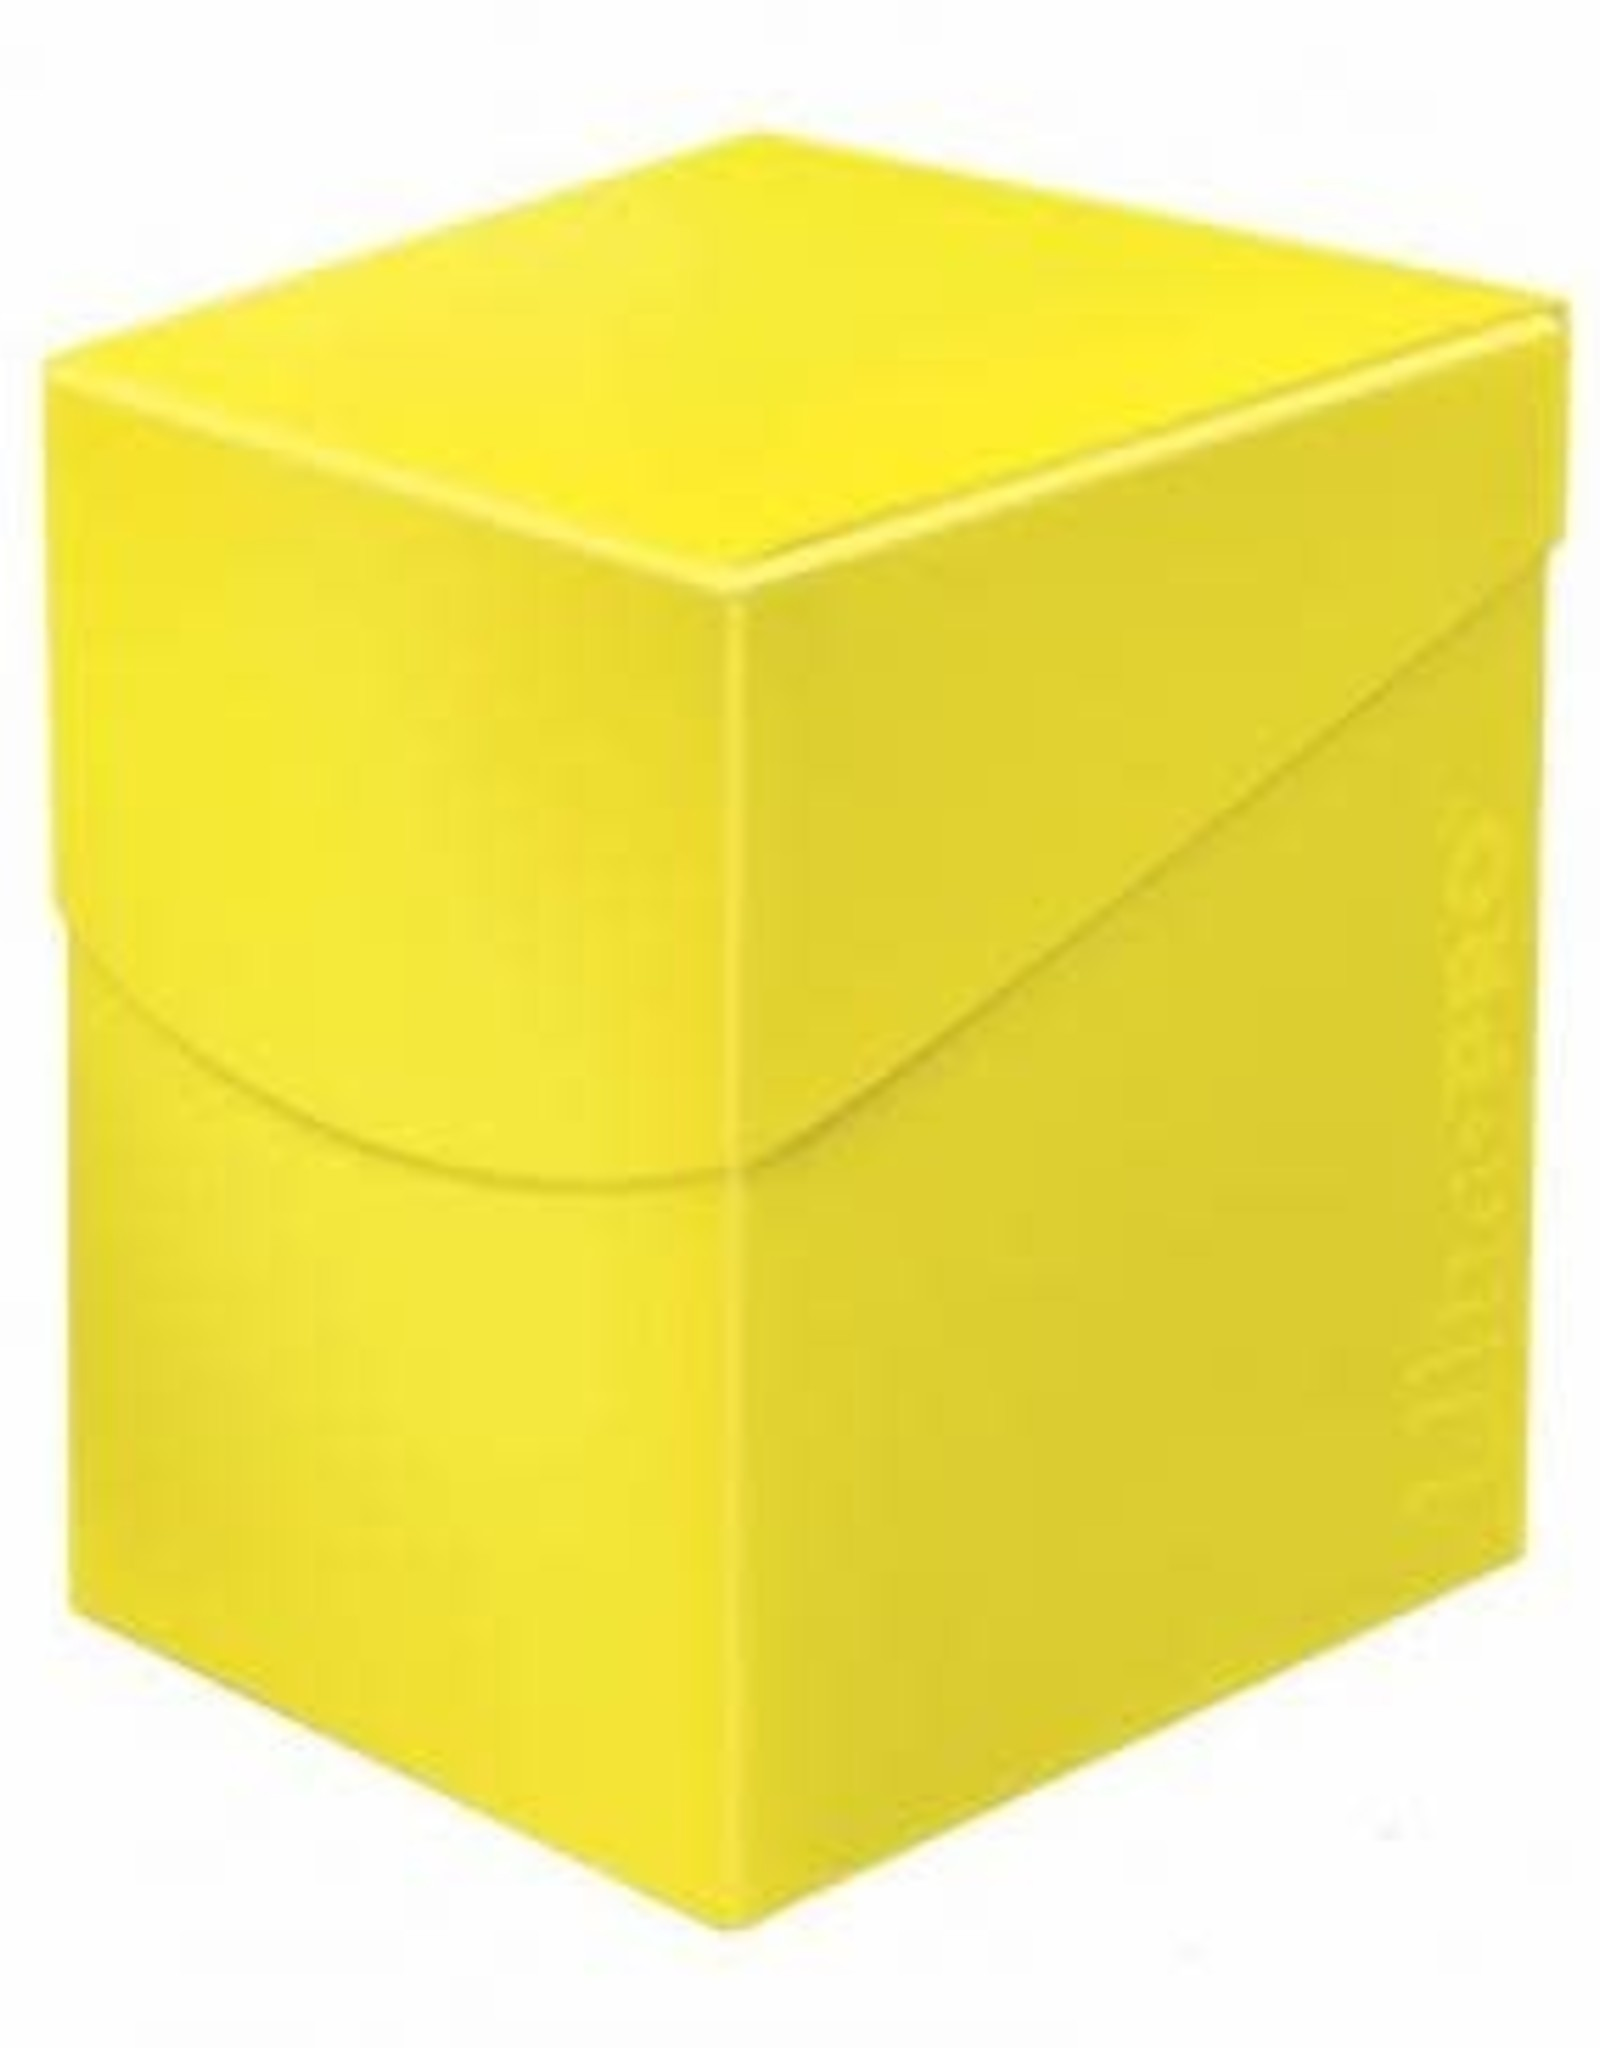 Deck Box: Eclipse 100+ Yellow